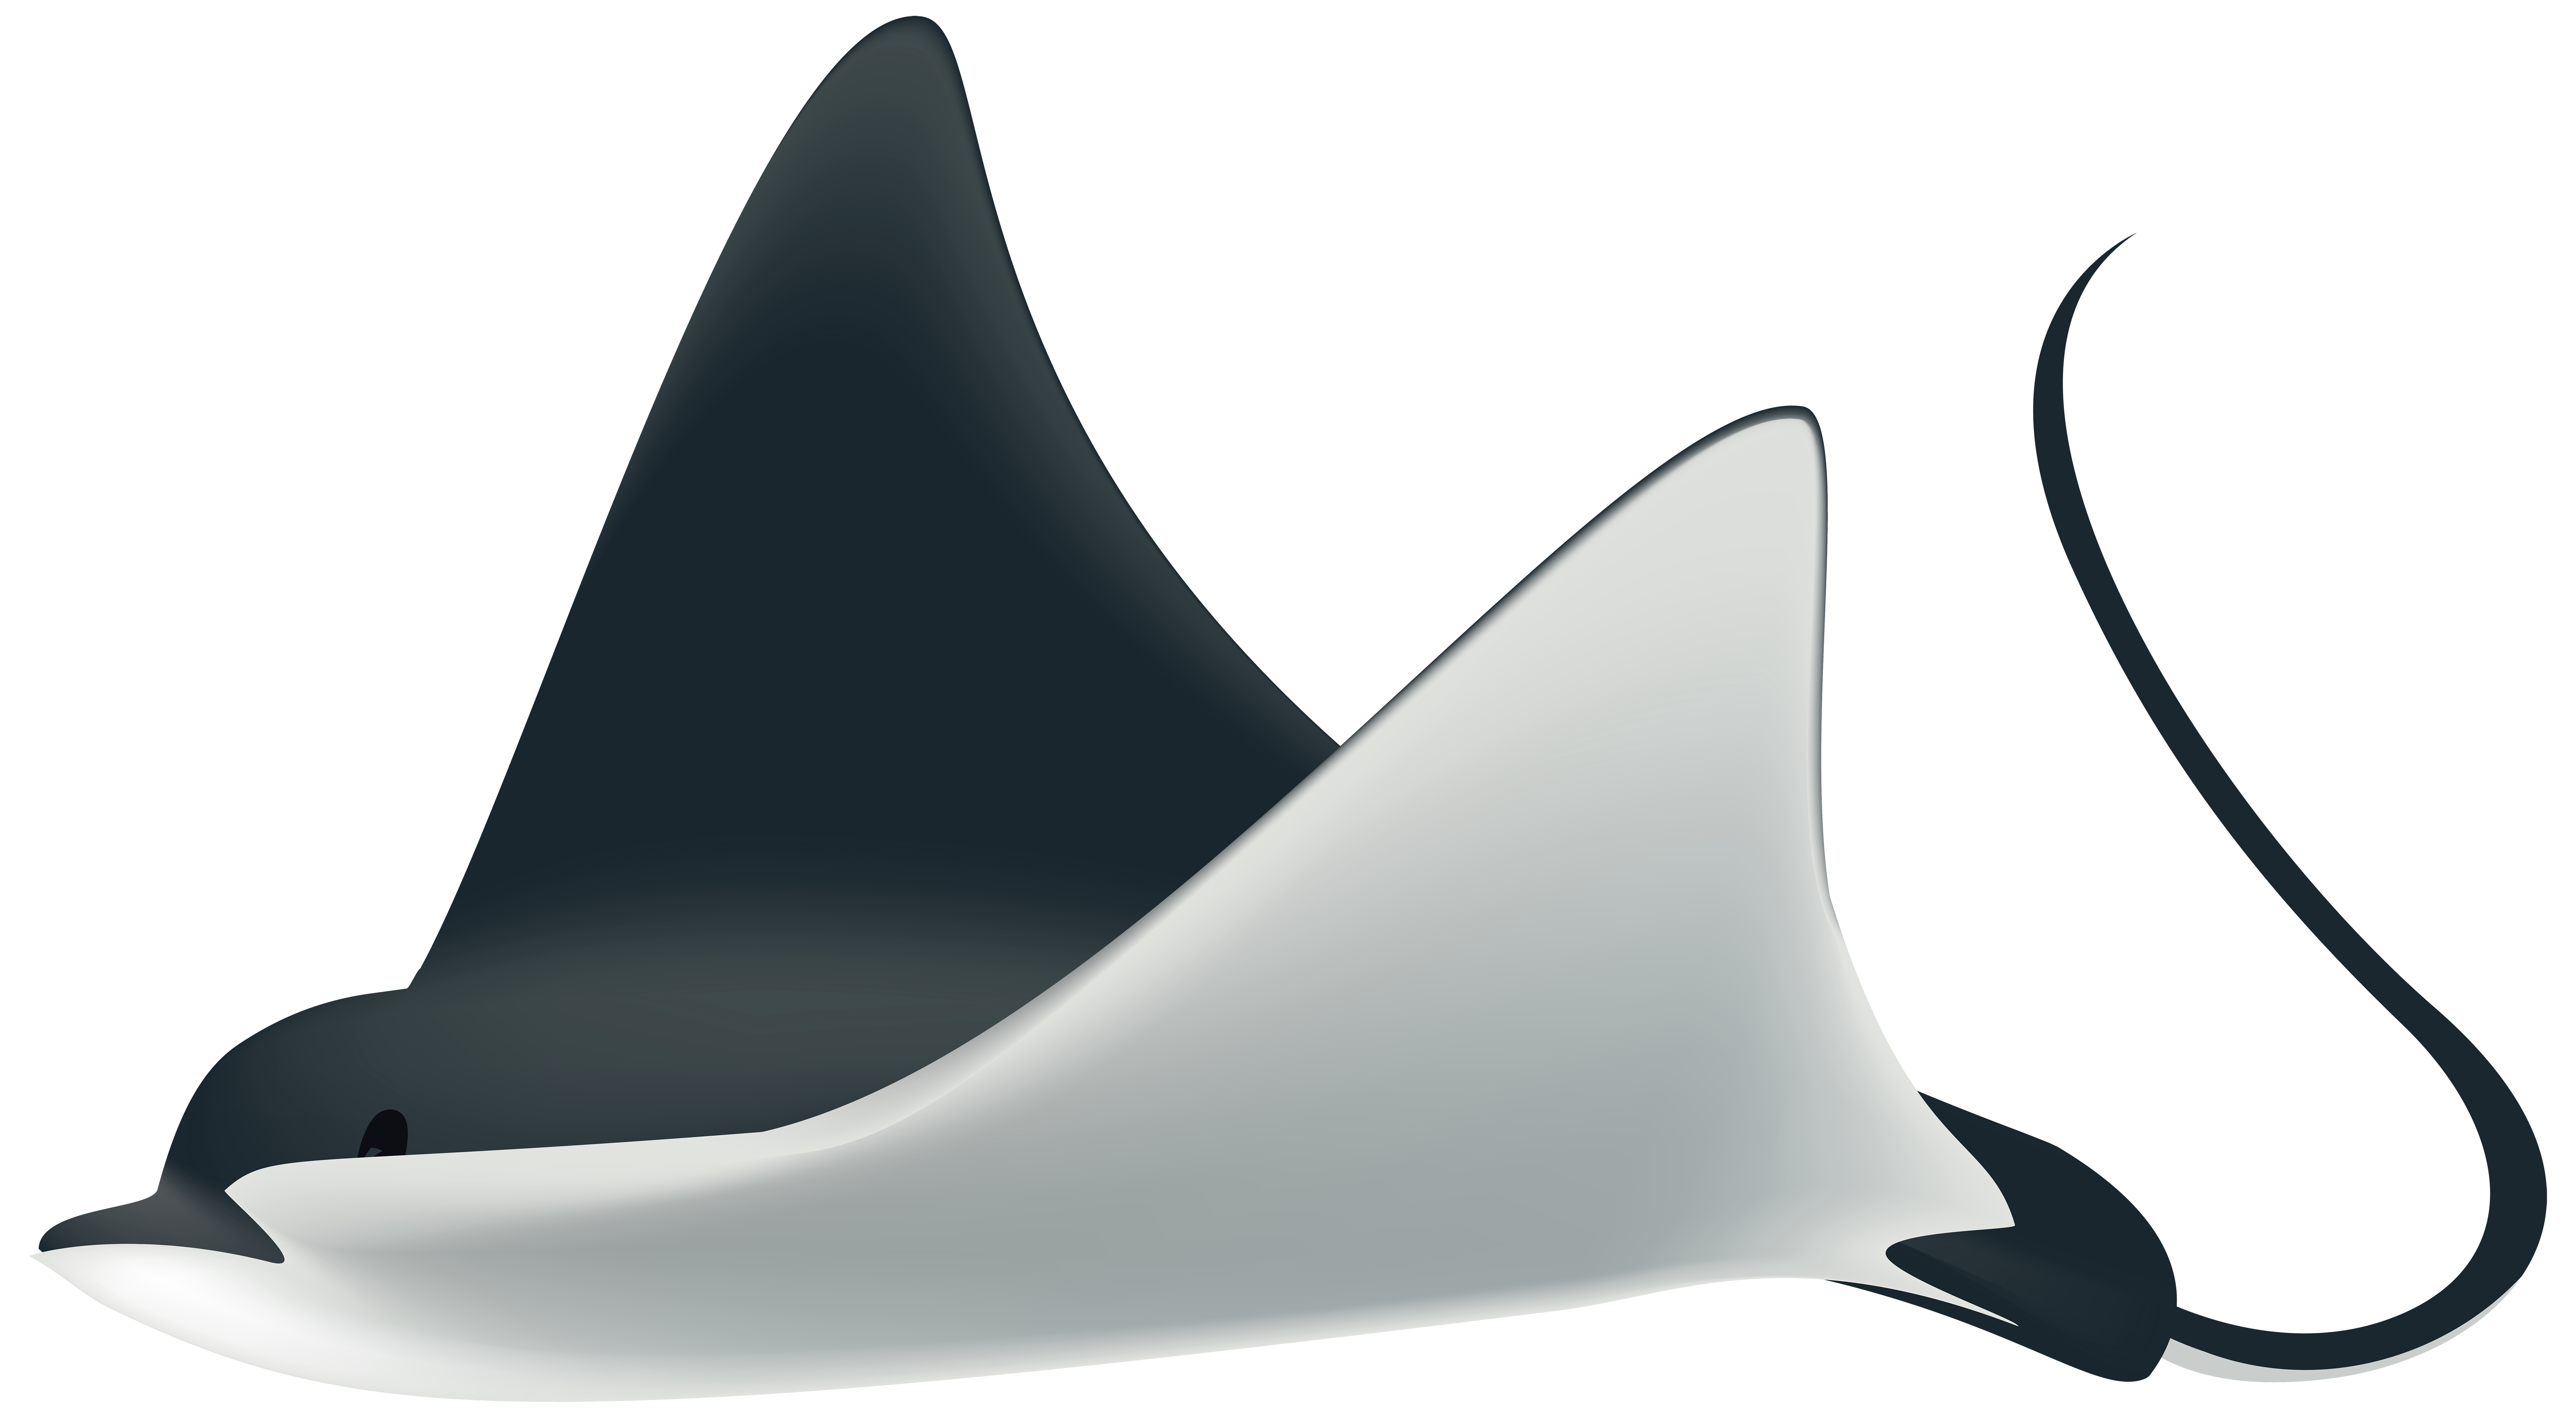 Ray clipart. Fish png transparent clip